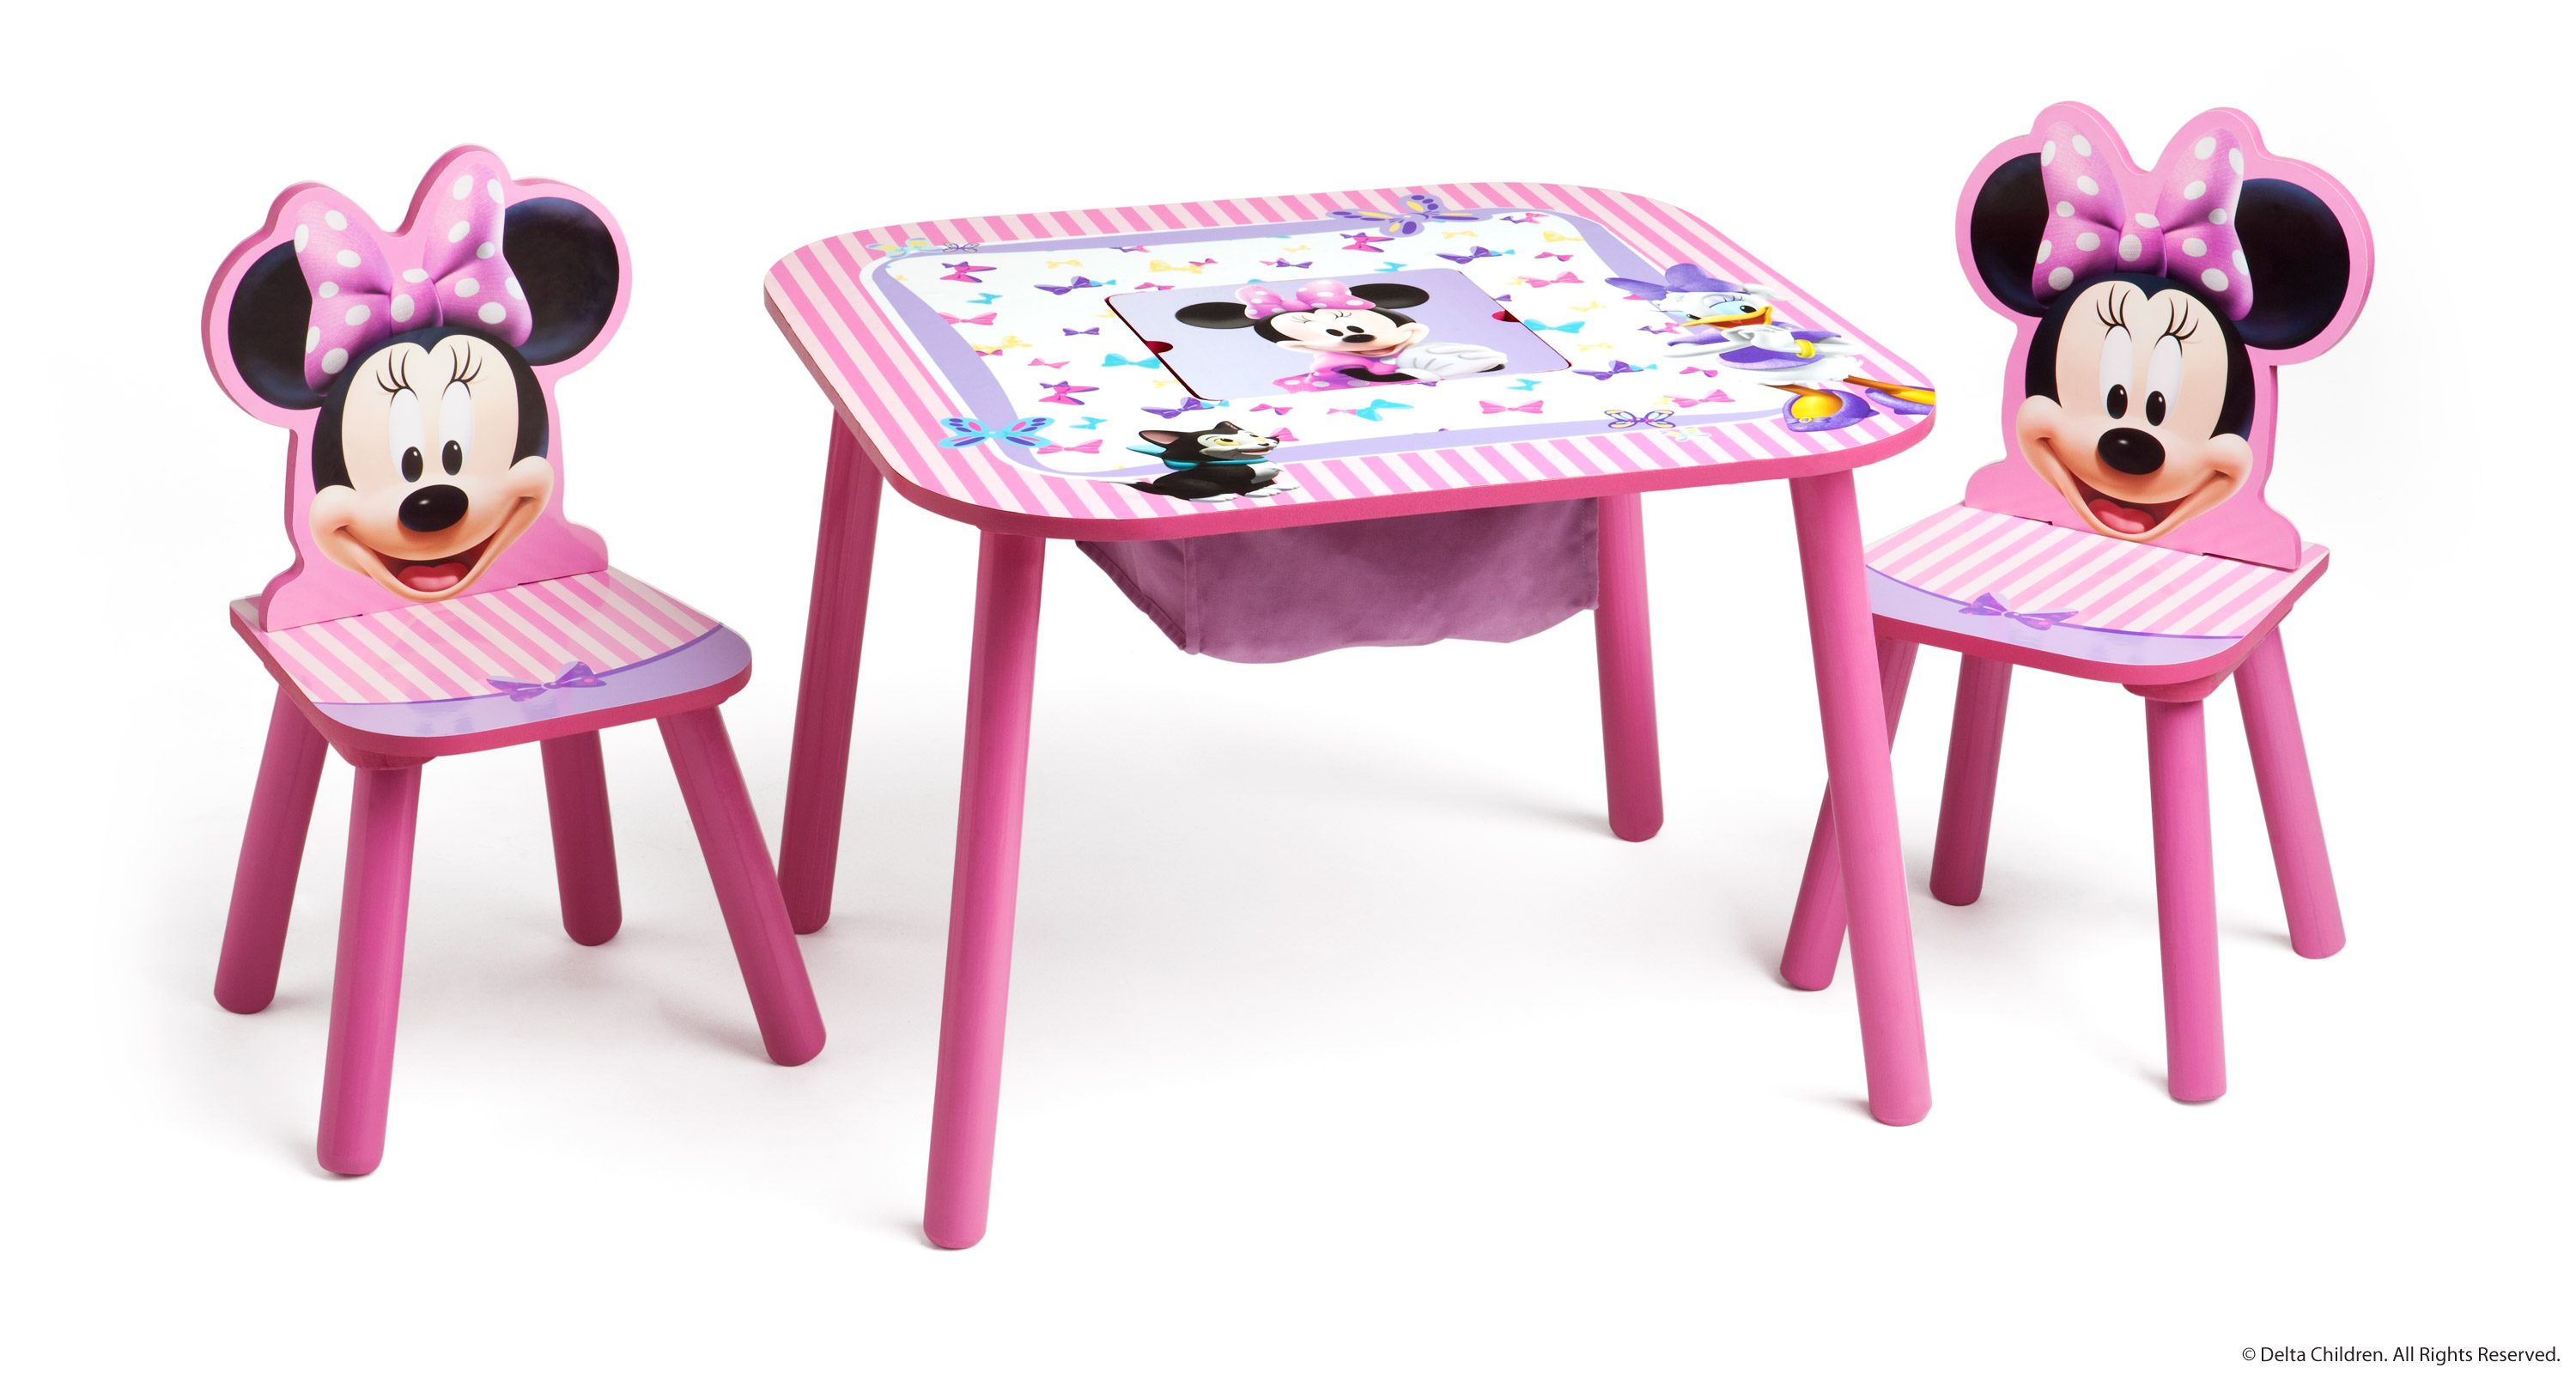 minnie table and chairs chair for bathtub disney mouse storage set what fun